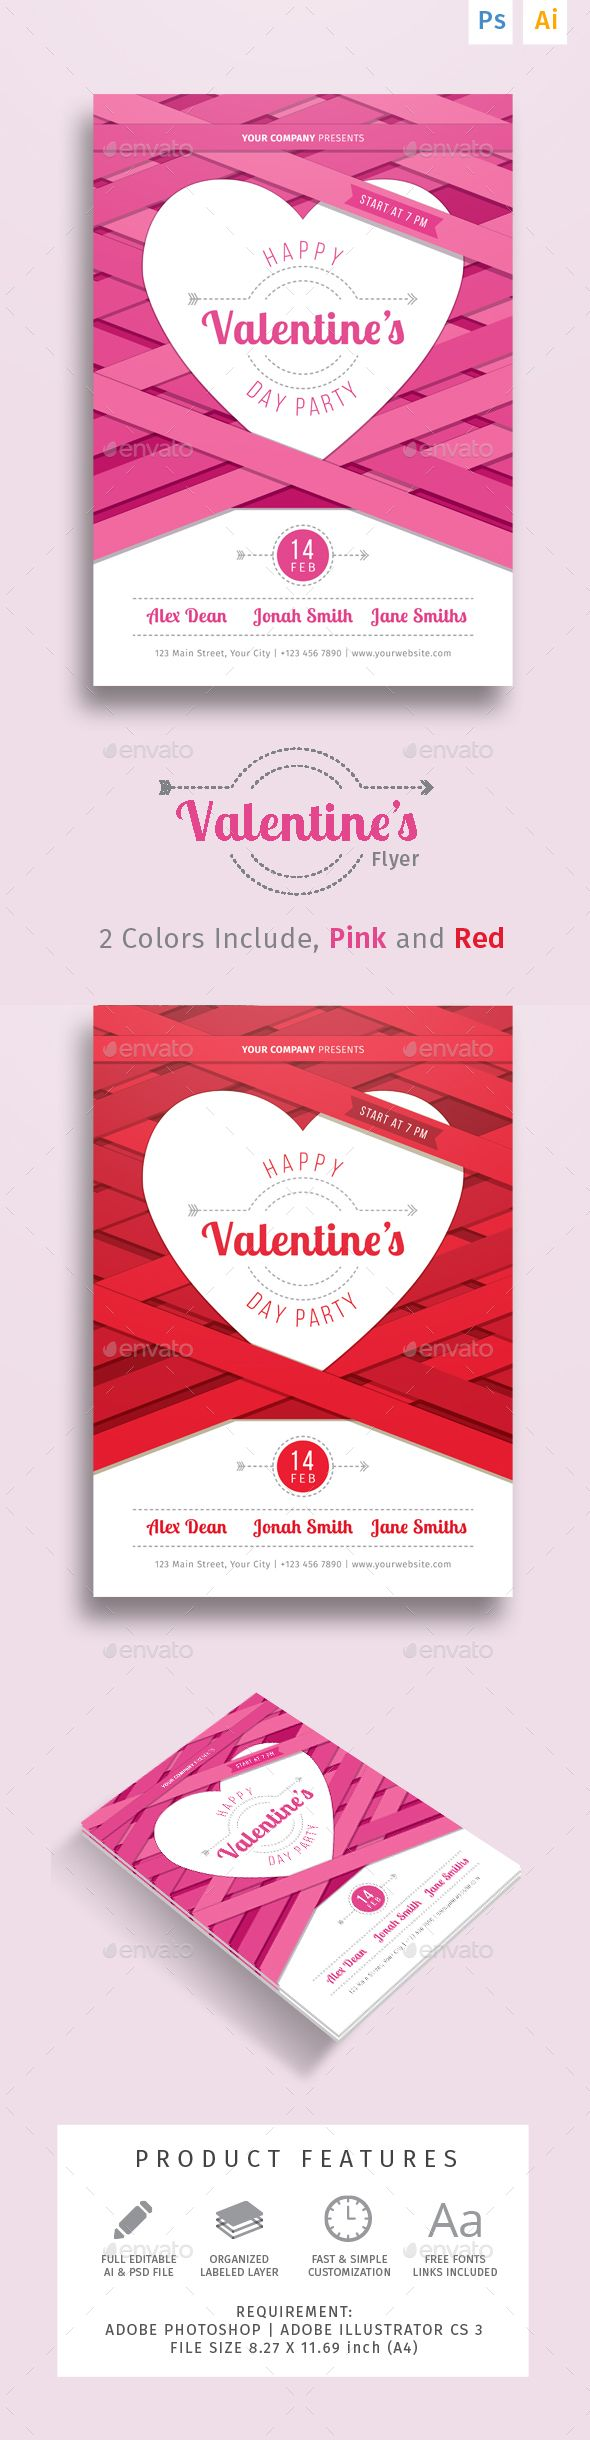 Valentine's Party Dinner Flyer — Photoshop PSD #invitation #clean • Available here → https://graphicriver.net/item/valentines-party-dinner-flyer/14461885?ref=pxcr